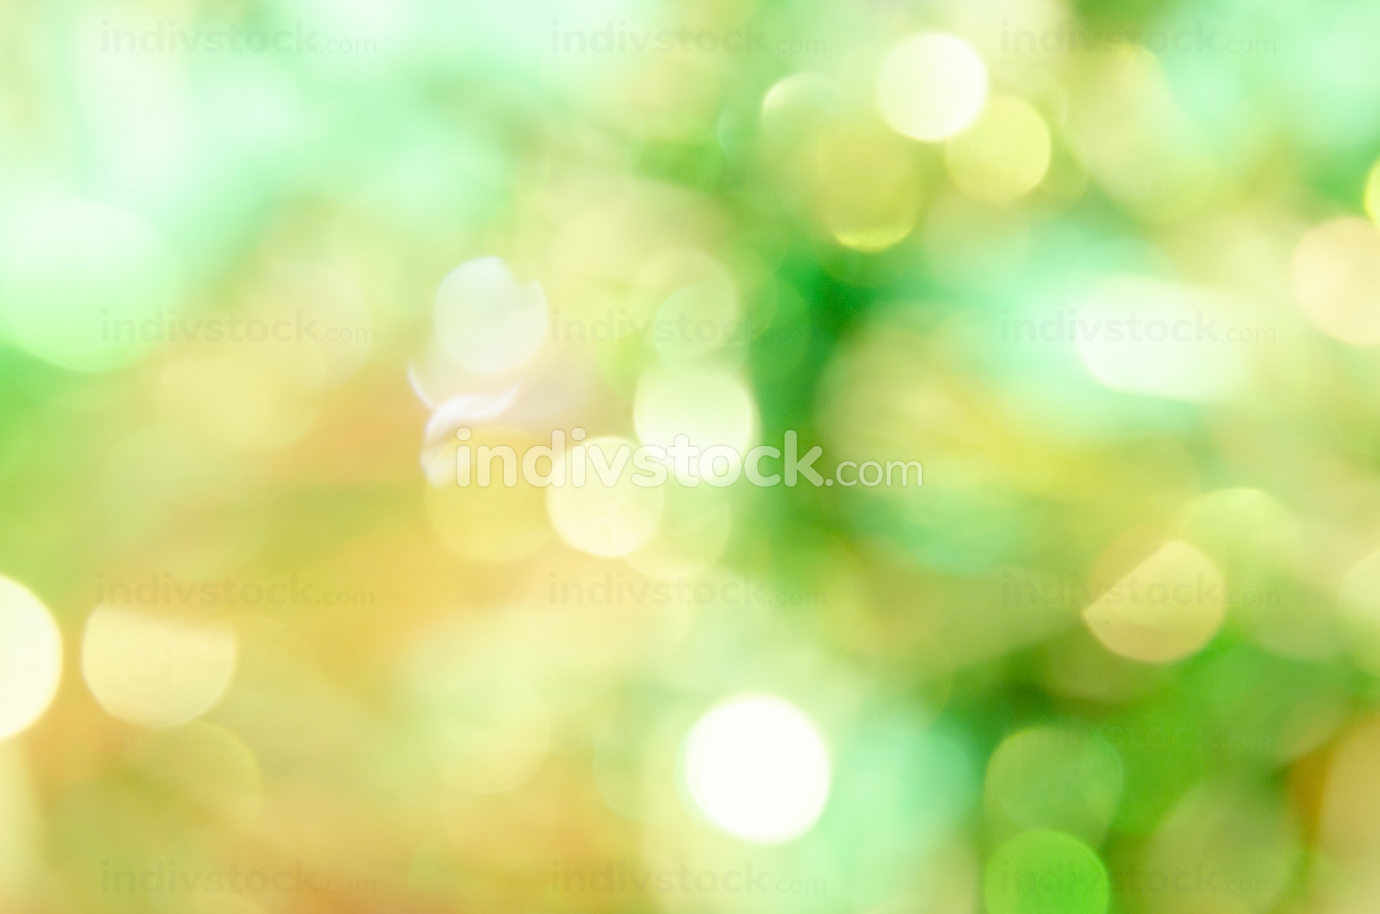 Abstract blurred yellow and green bokeh on background